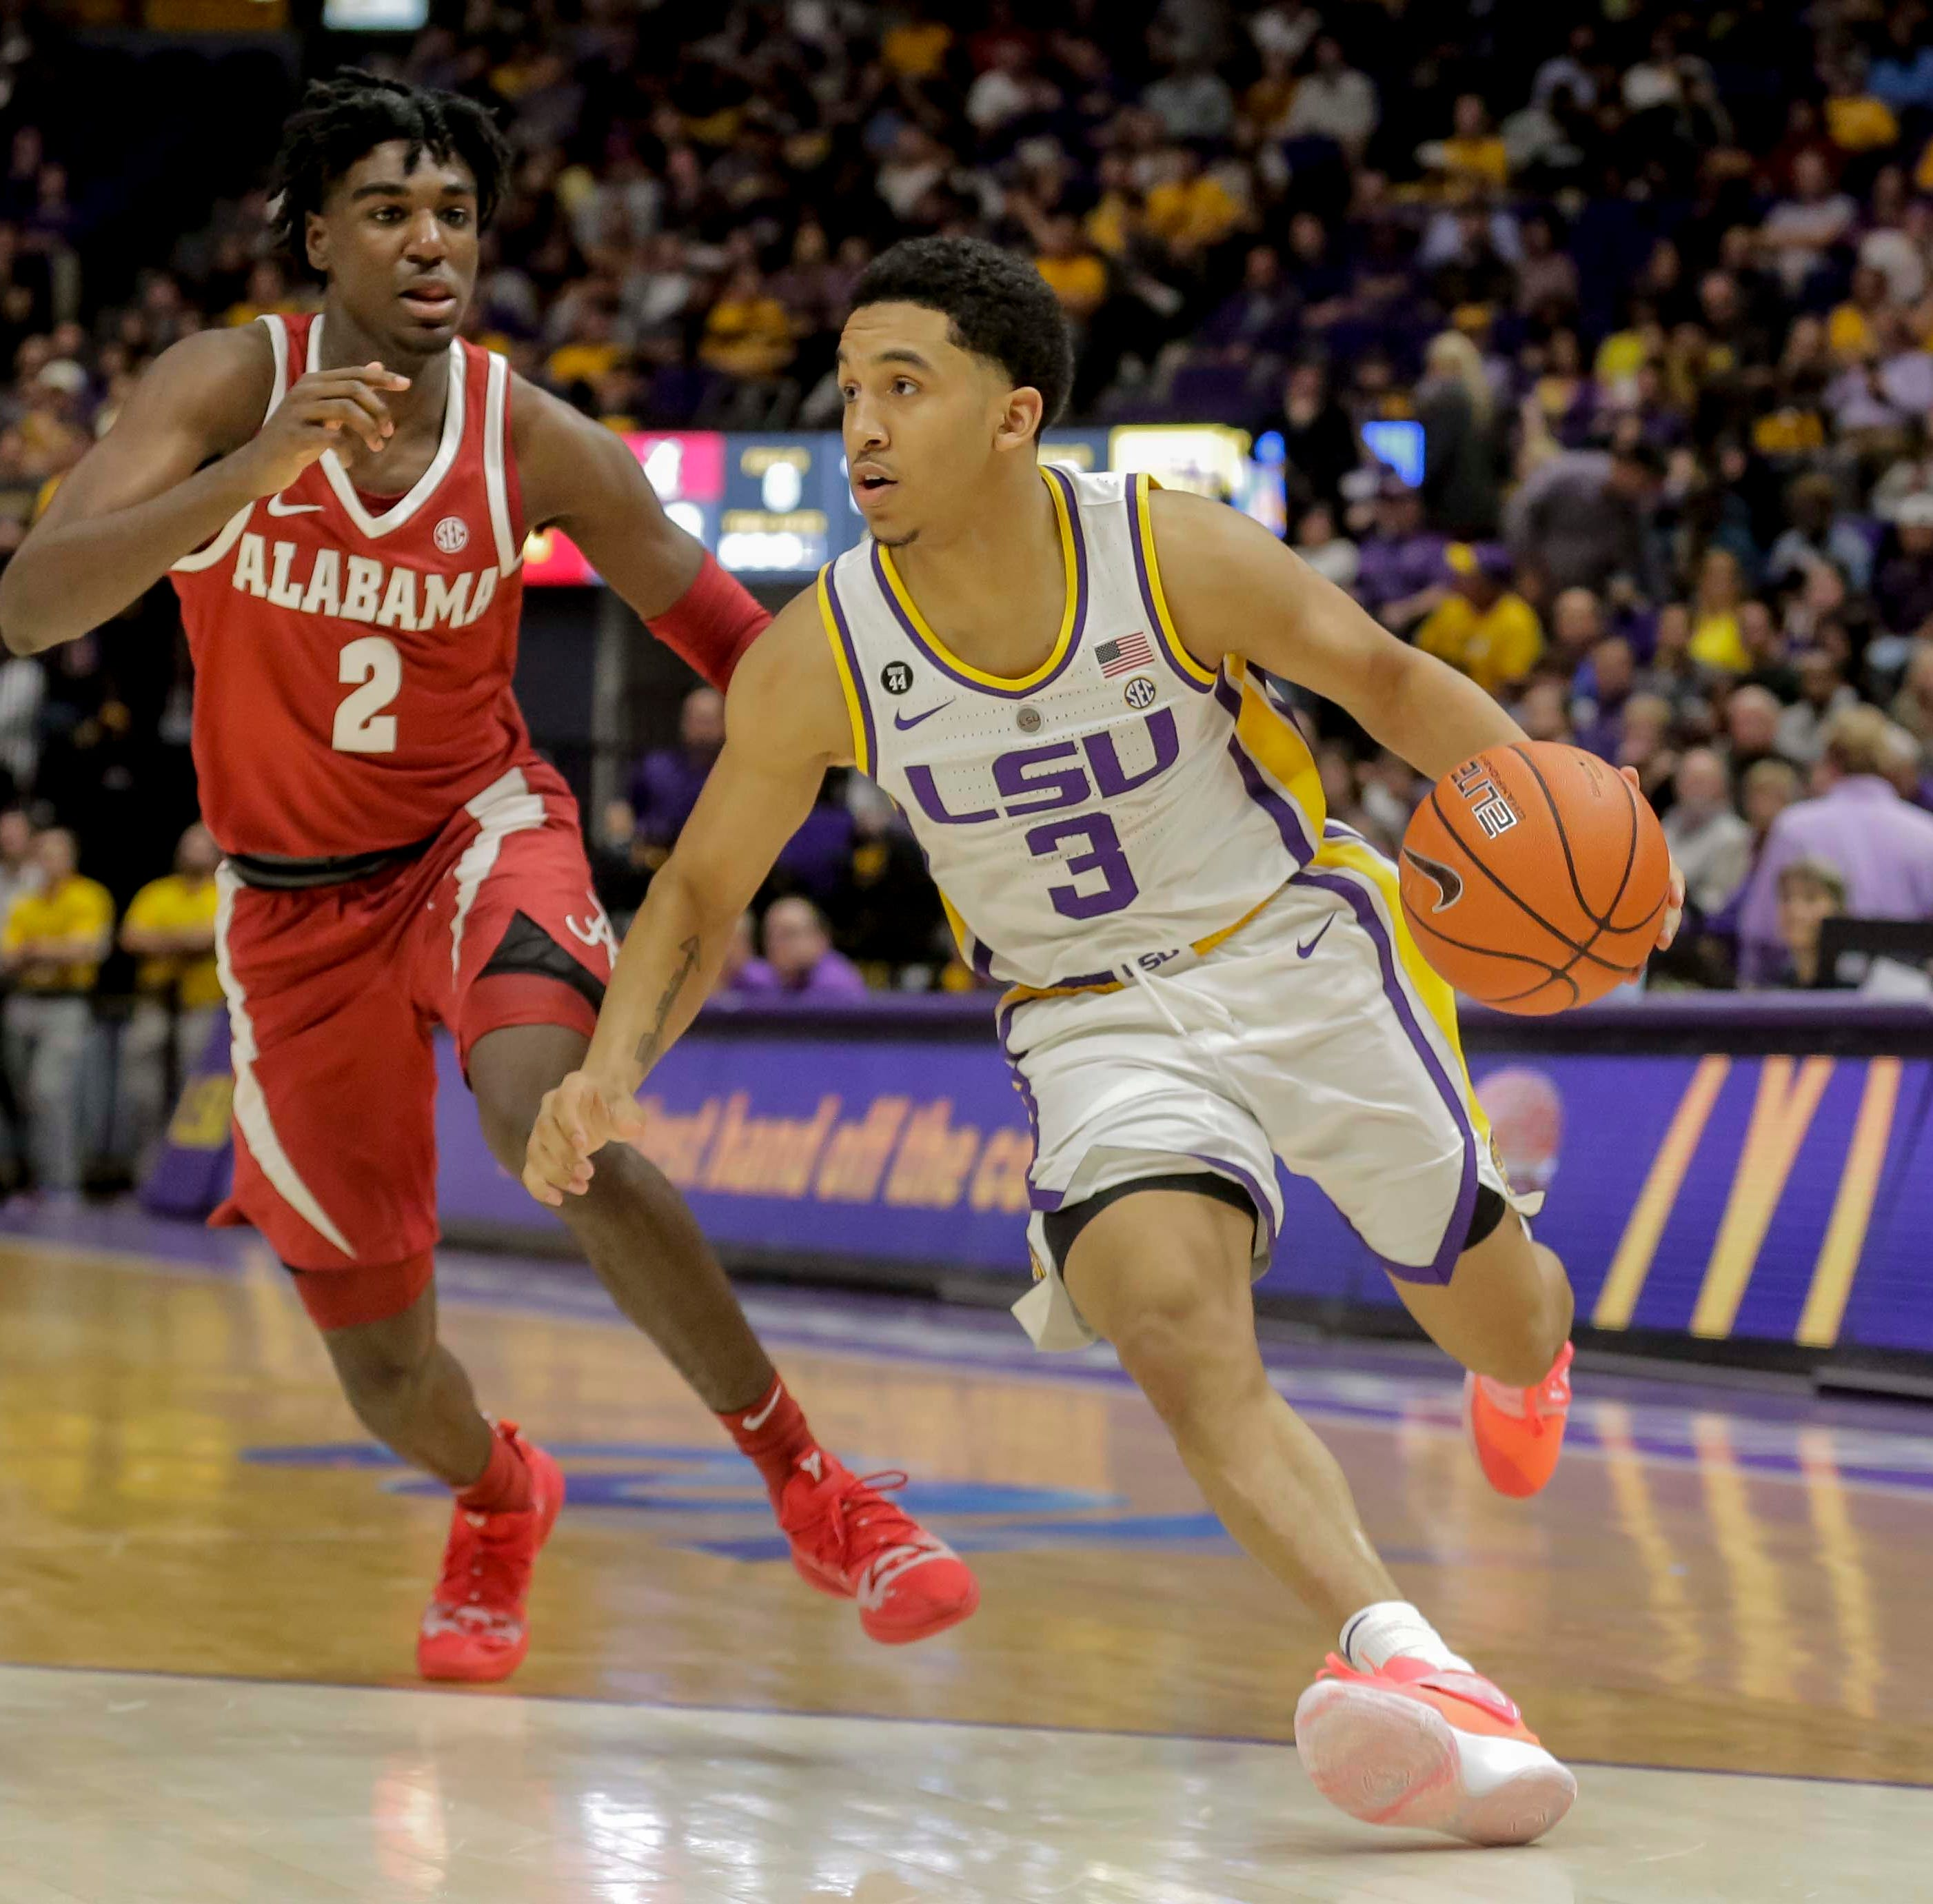 Freshly ranked LSU hosts Georgia and hopes to stay in the polls longer this time around